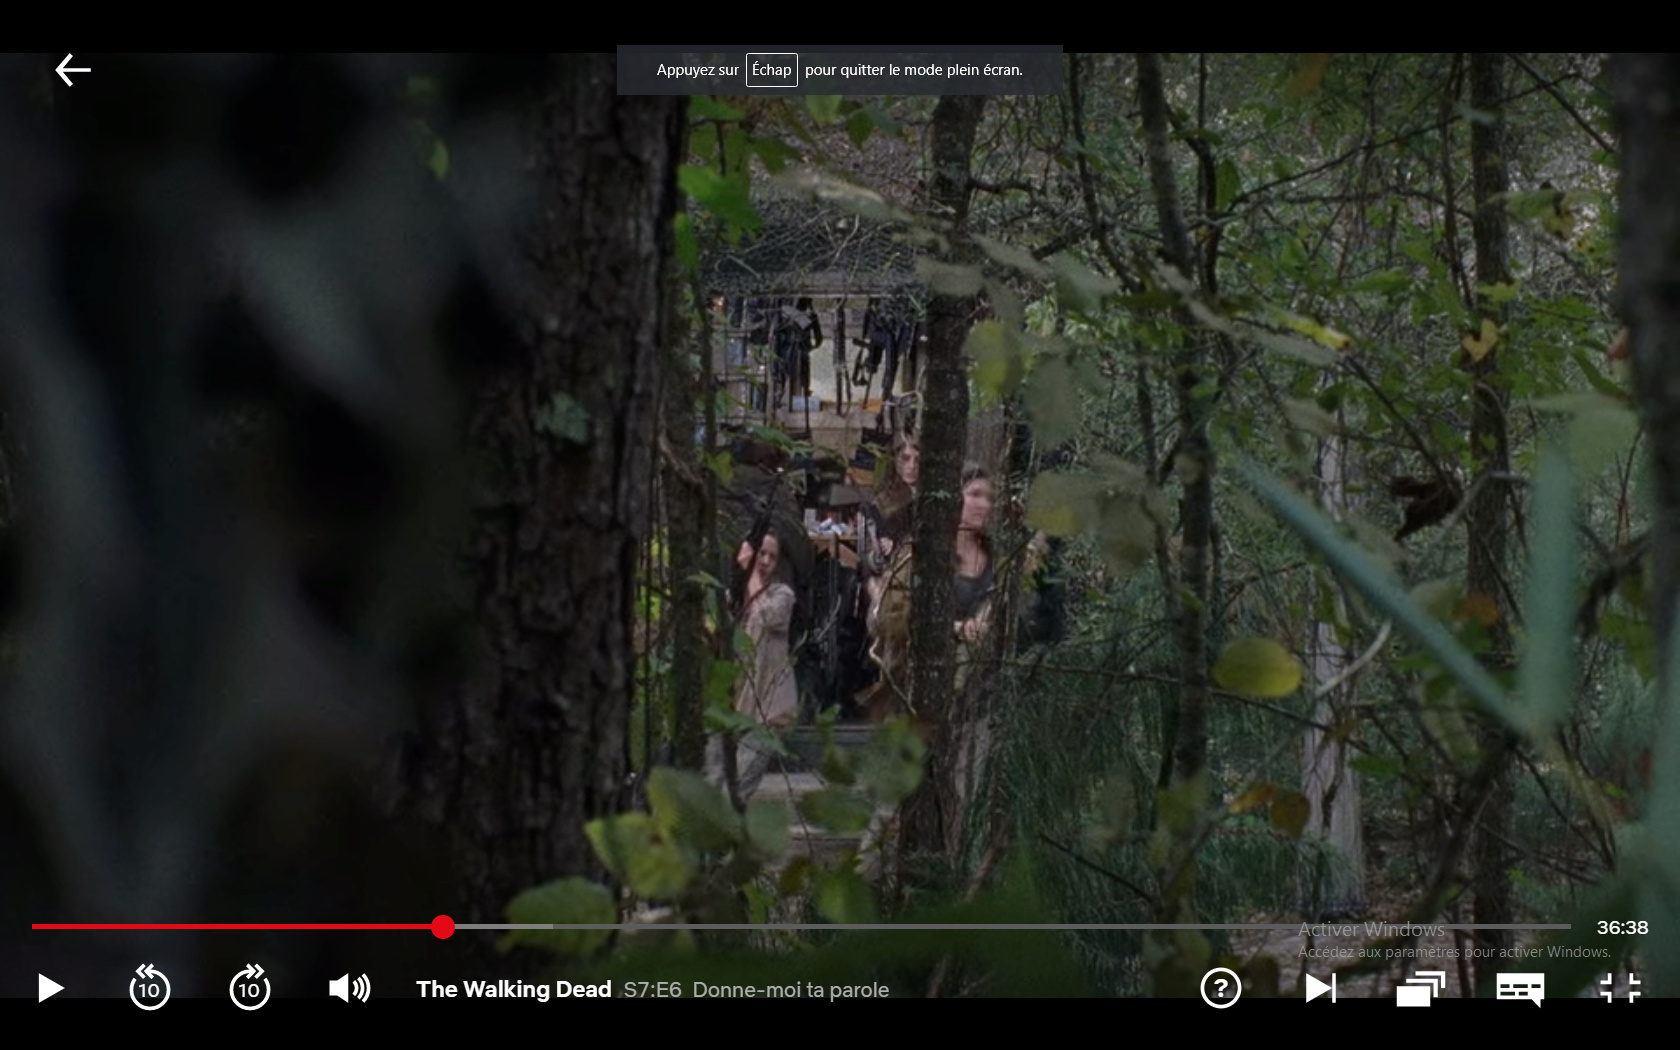 The Walking dead, storybording with Google Earth and Street View - Page 6 Captur32